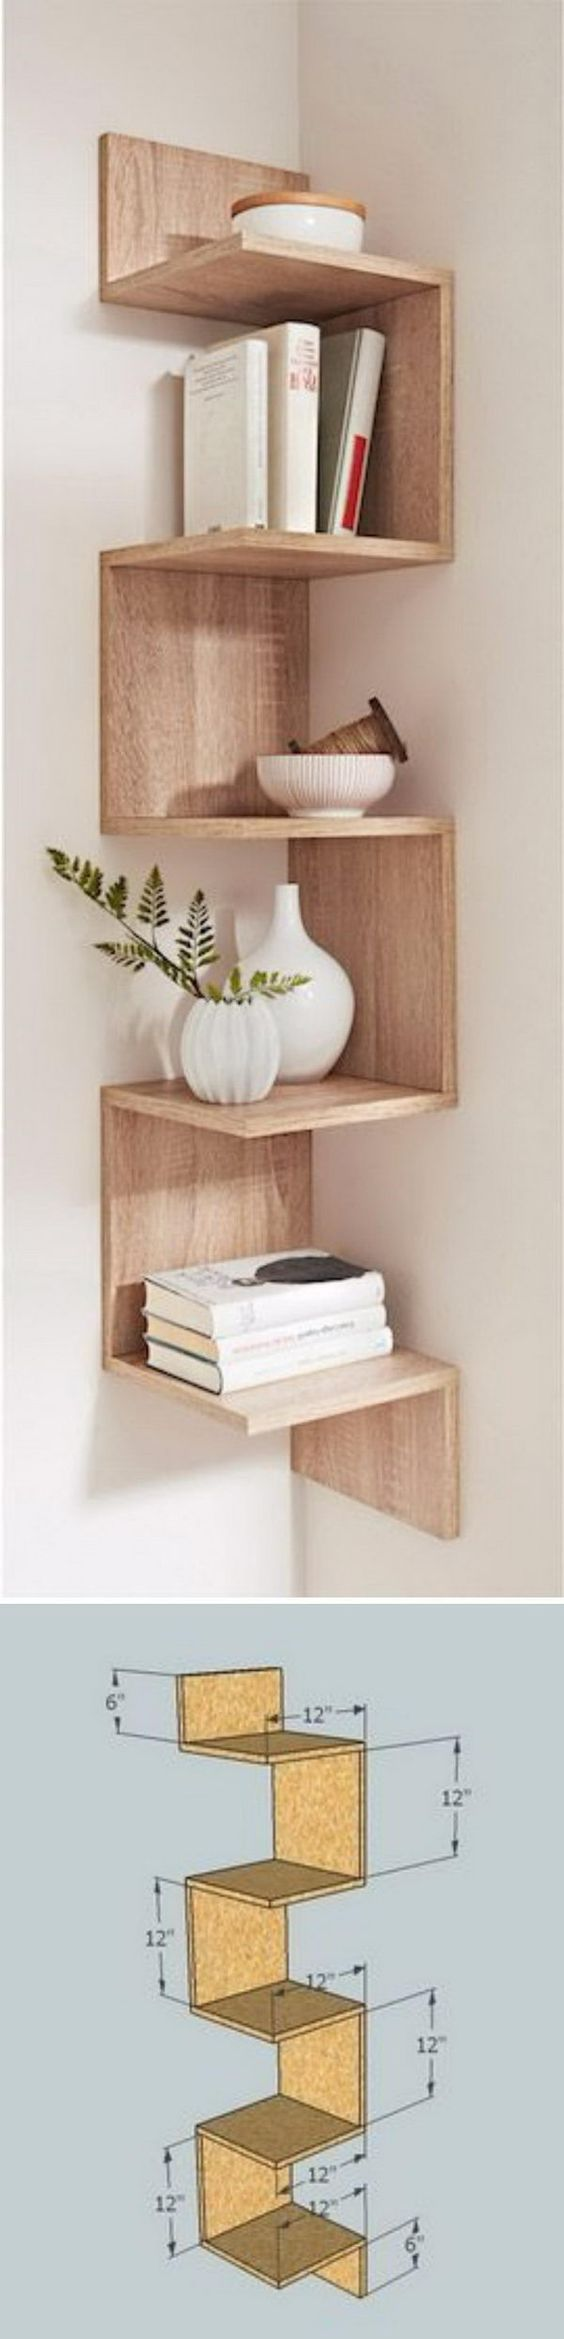 Superior Corner Shelf Made Of Plywood.